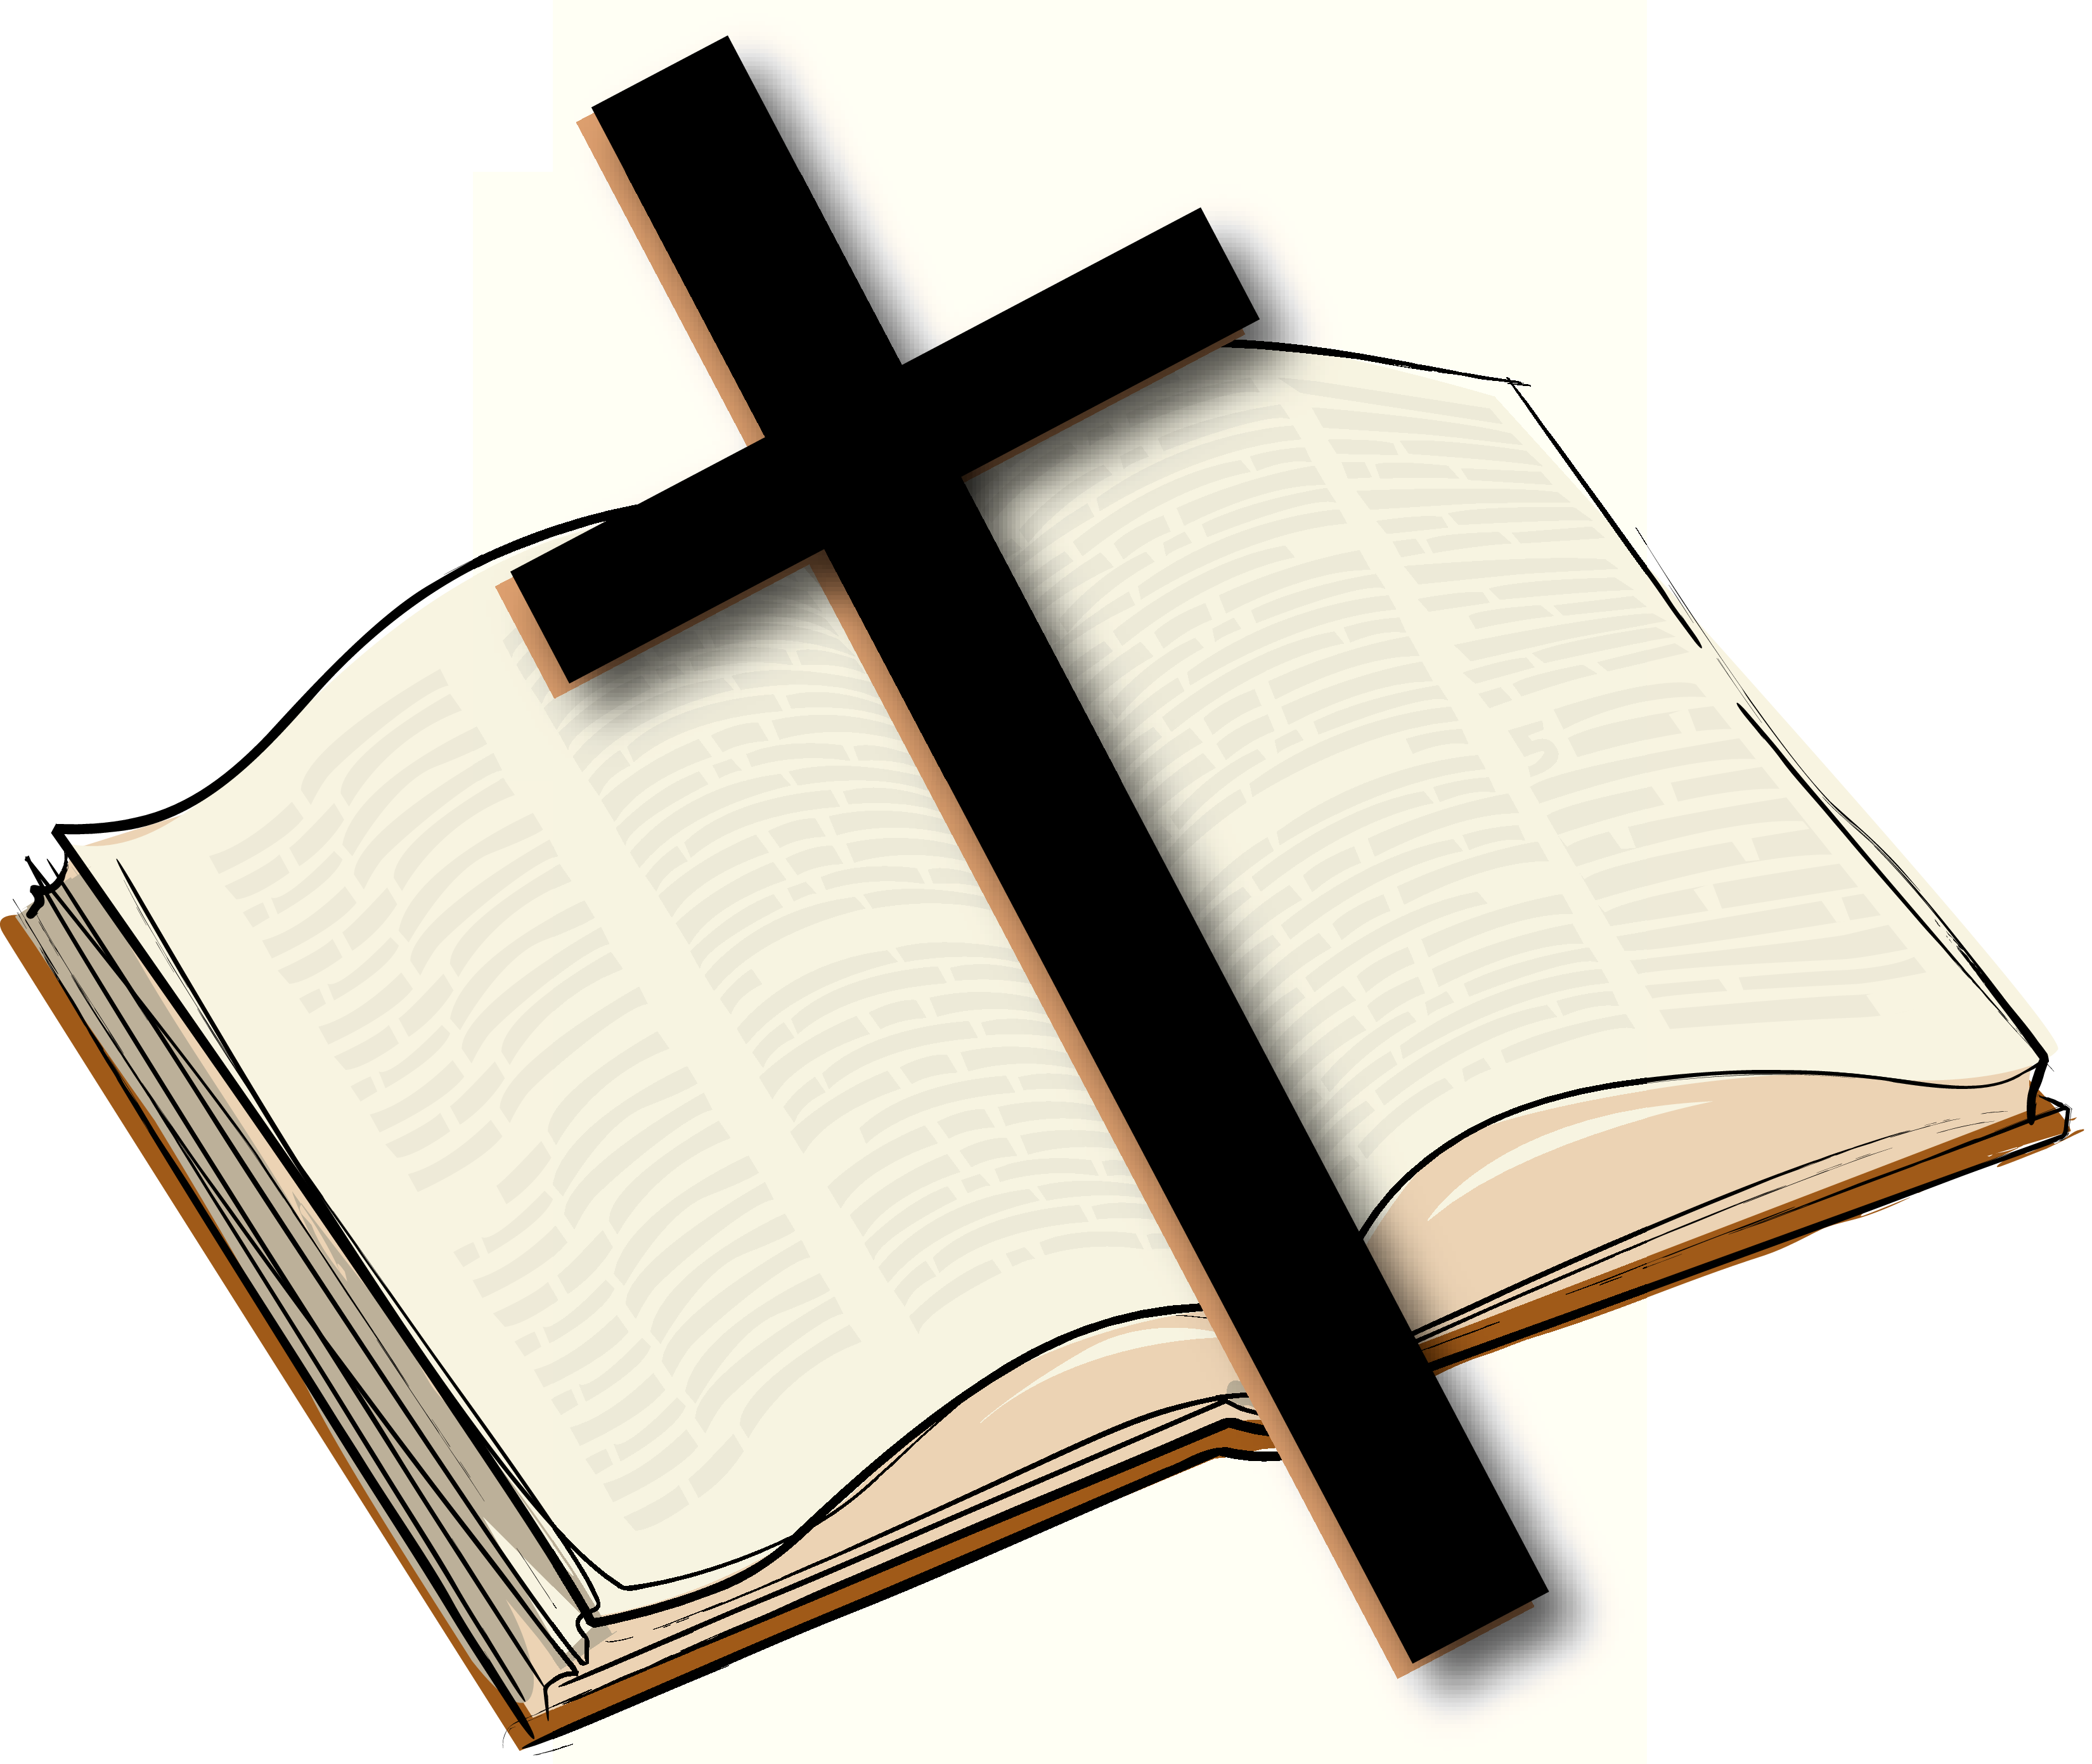 Clipart bible and cross black and white Bible Christian cross Clip art - holy bible 3300*2783 transprent Png ... black and white